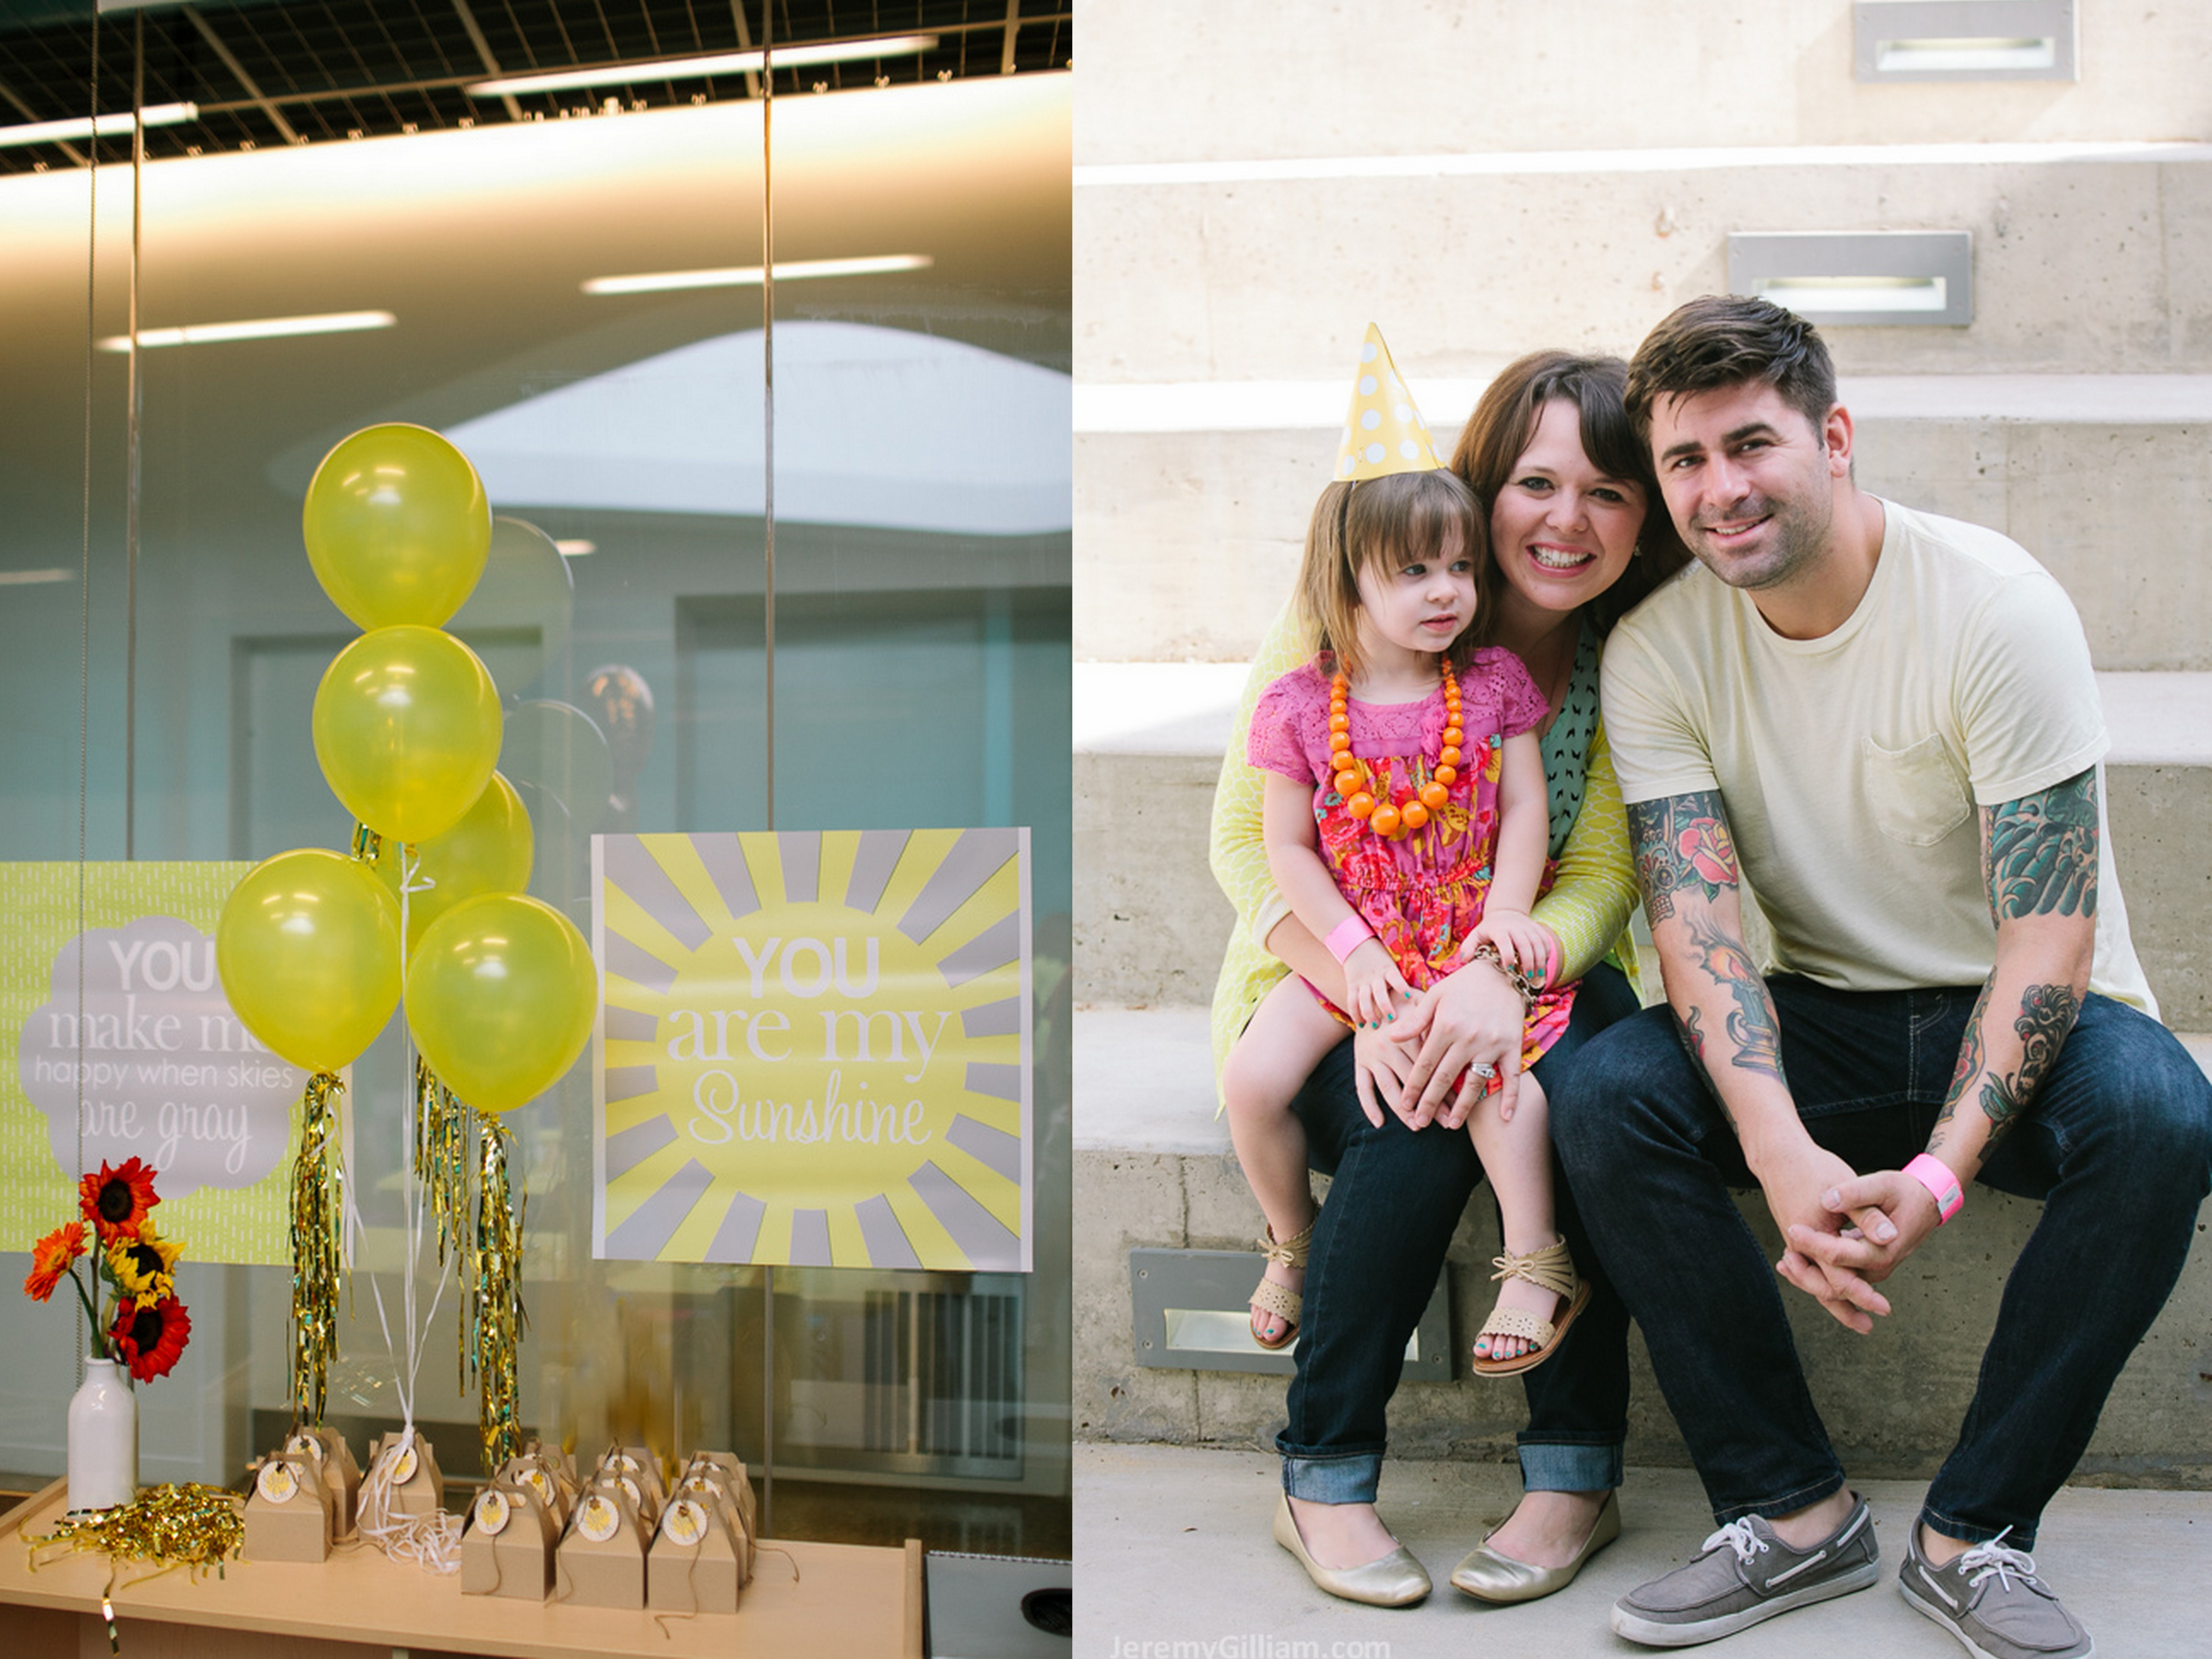 Saylor Rue Turns 3 Perot Museum Grit Gold Event Design